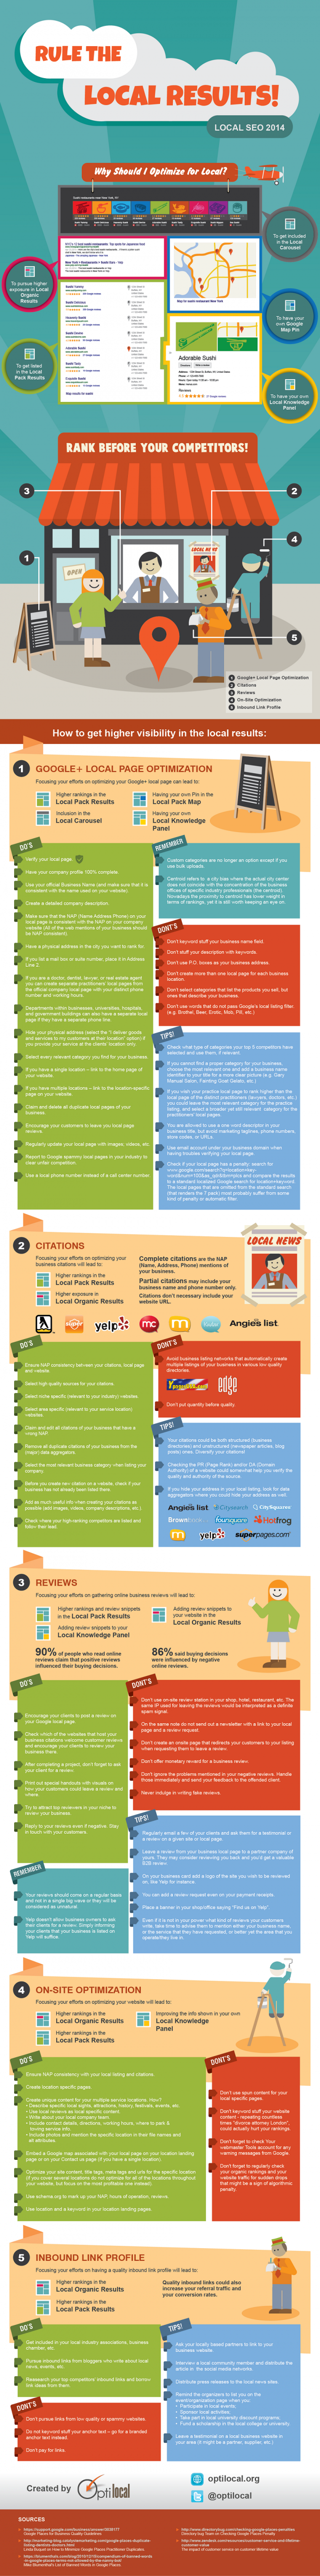 Optilocal Infographic Rule the Local Results